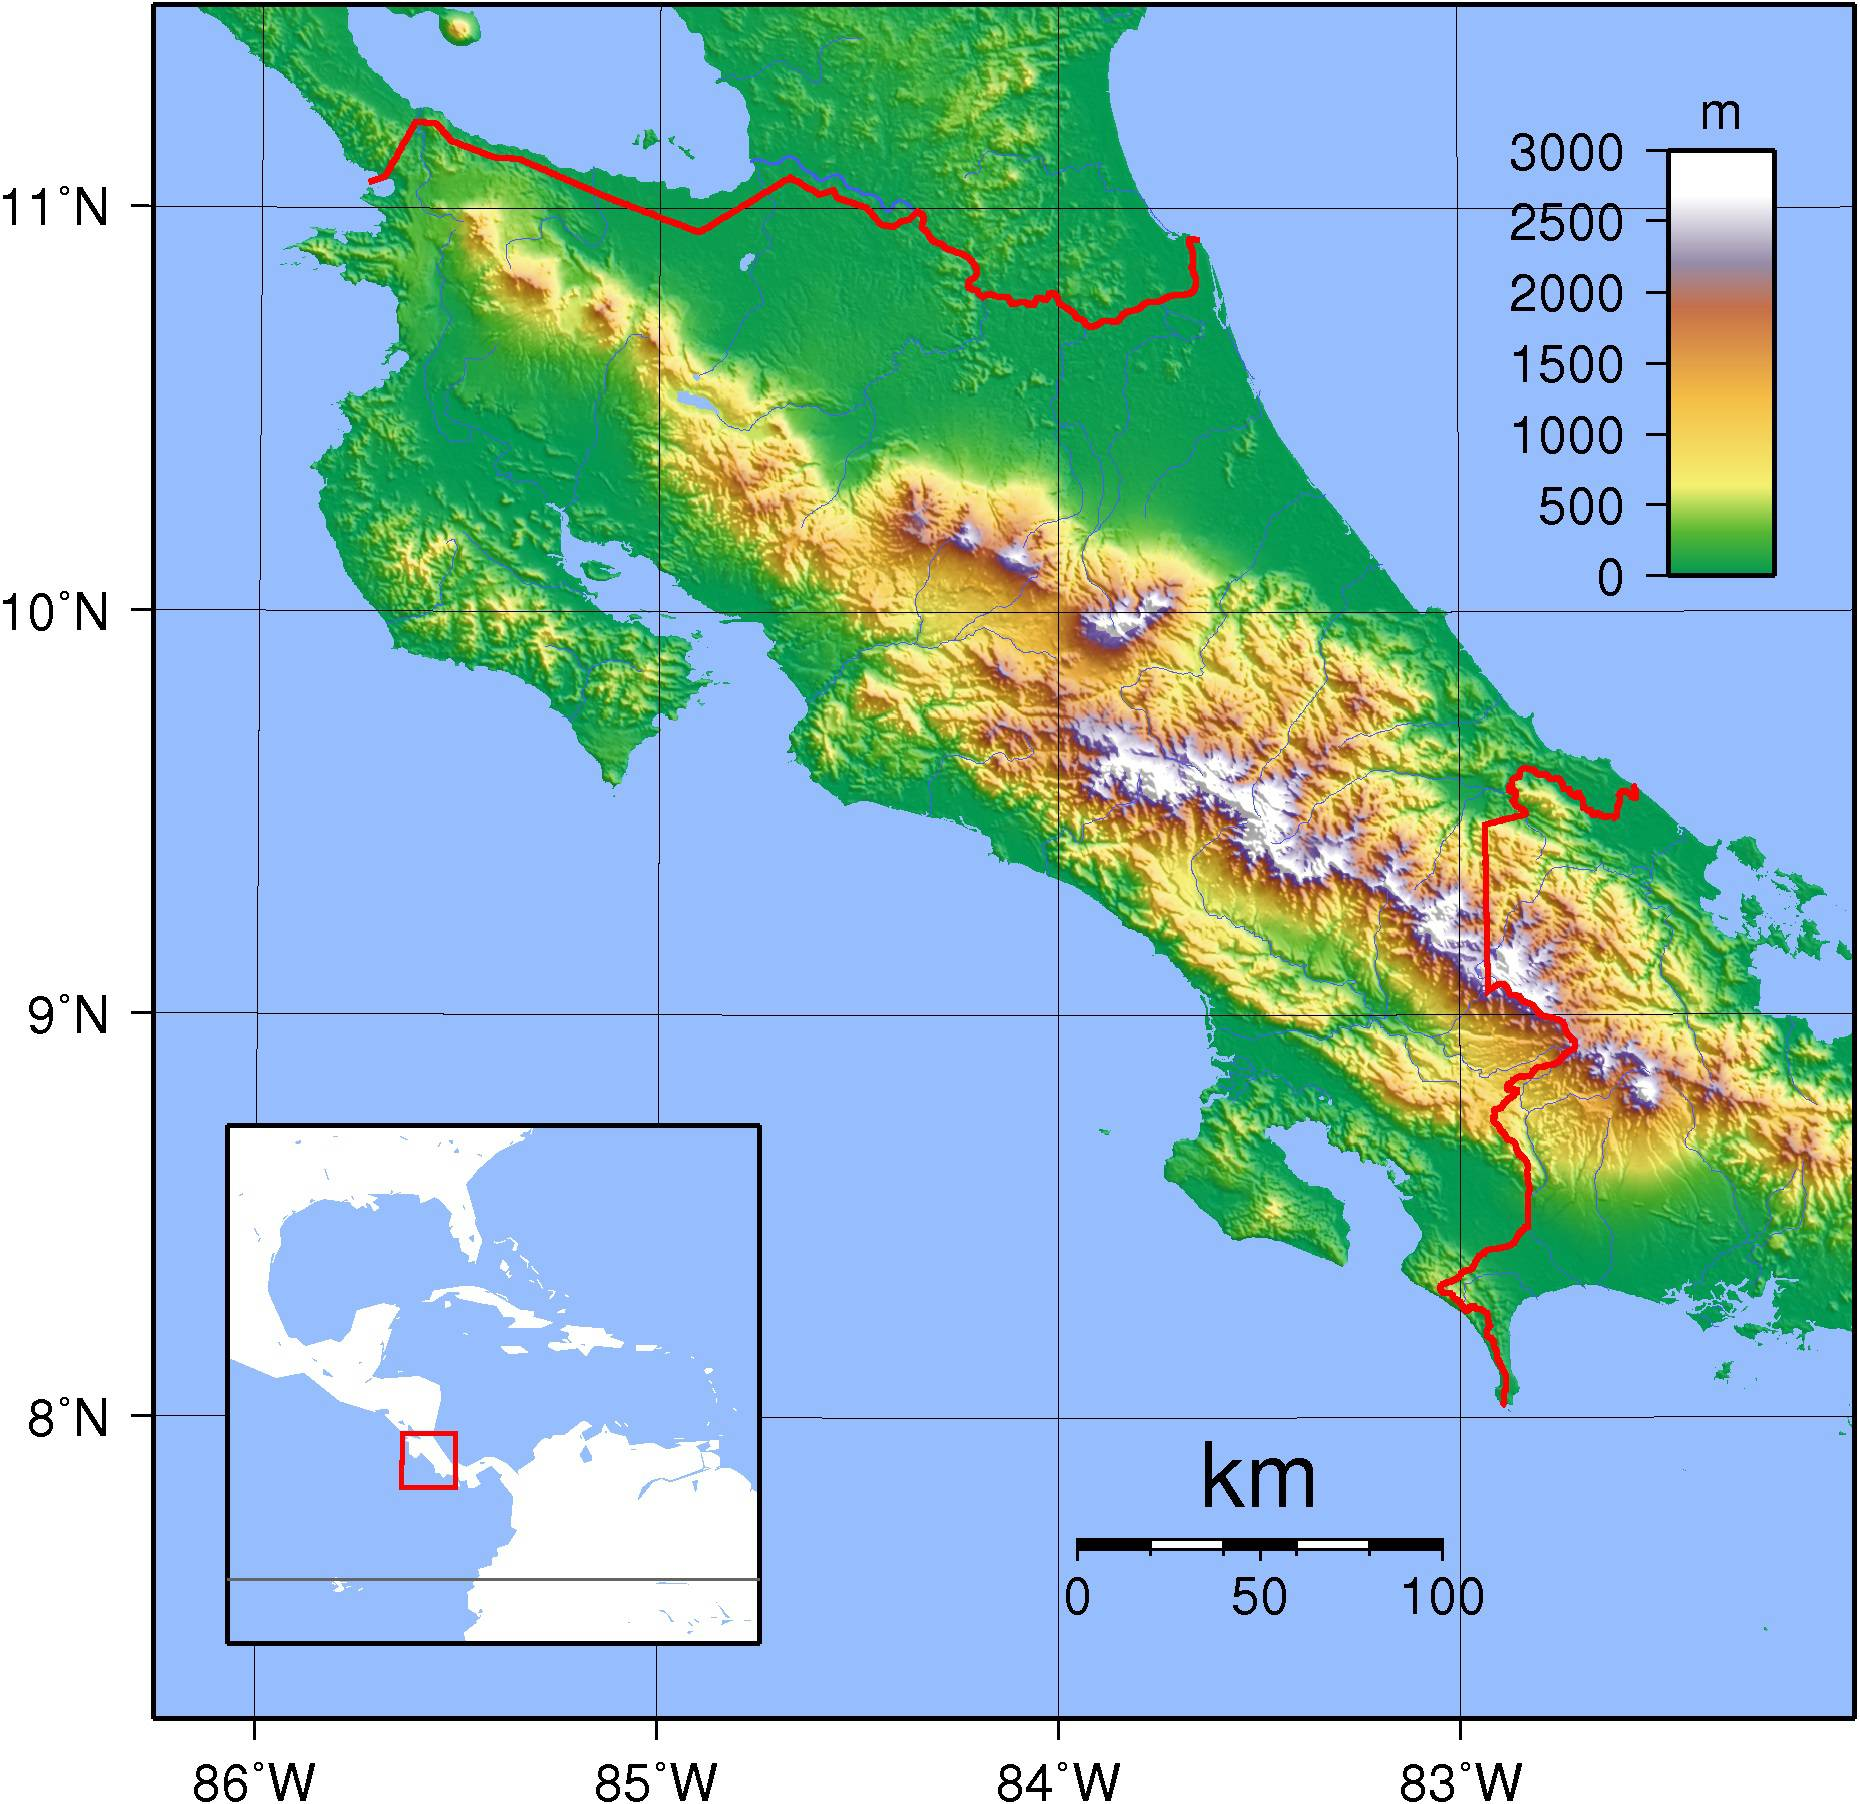 Carte du relief du Costa Rica